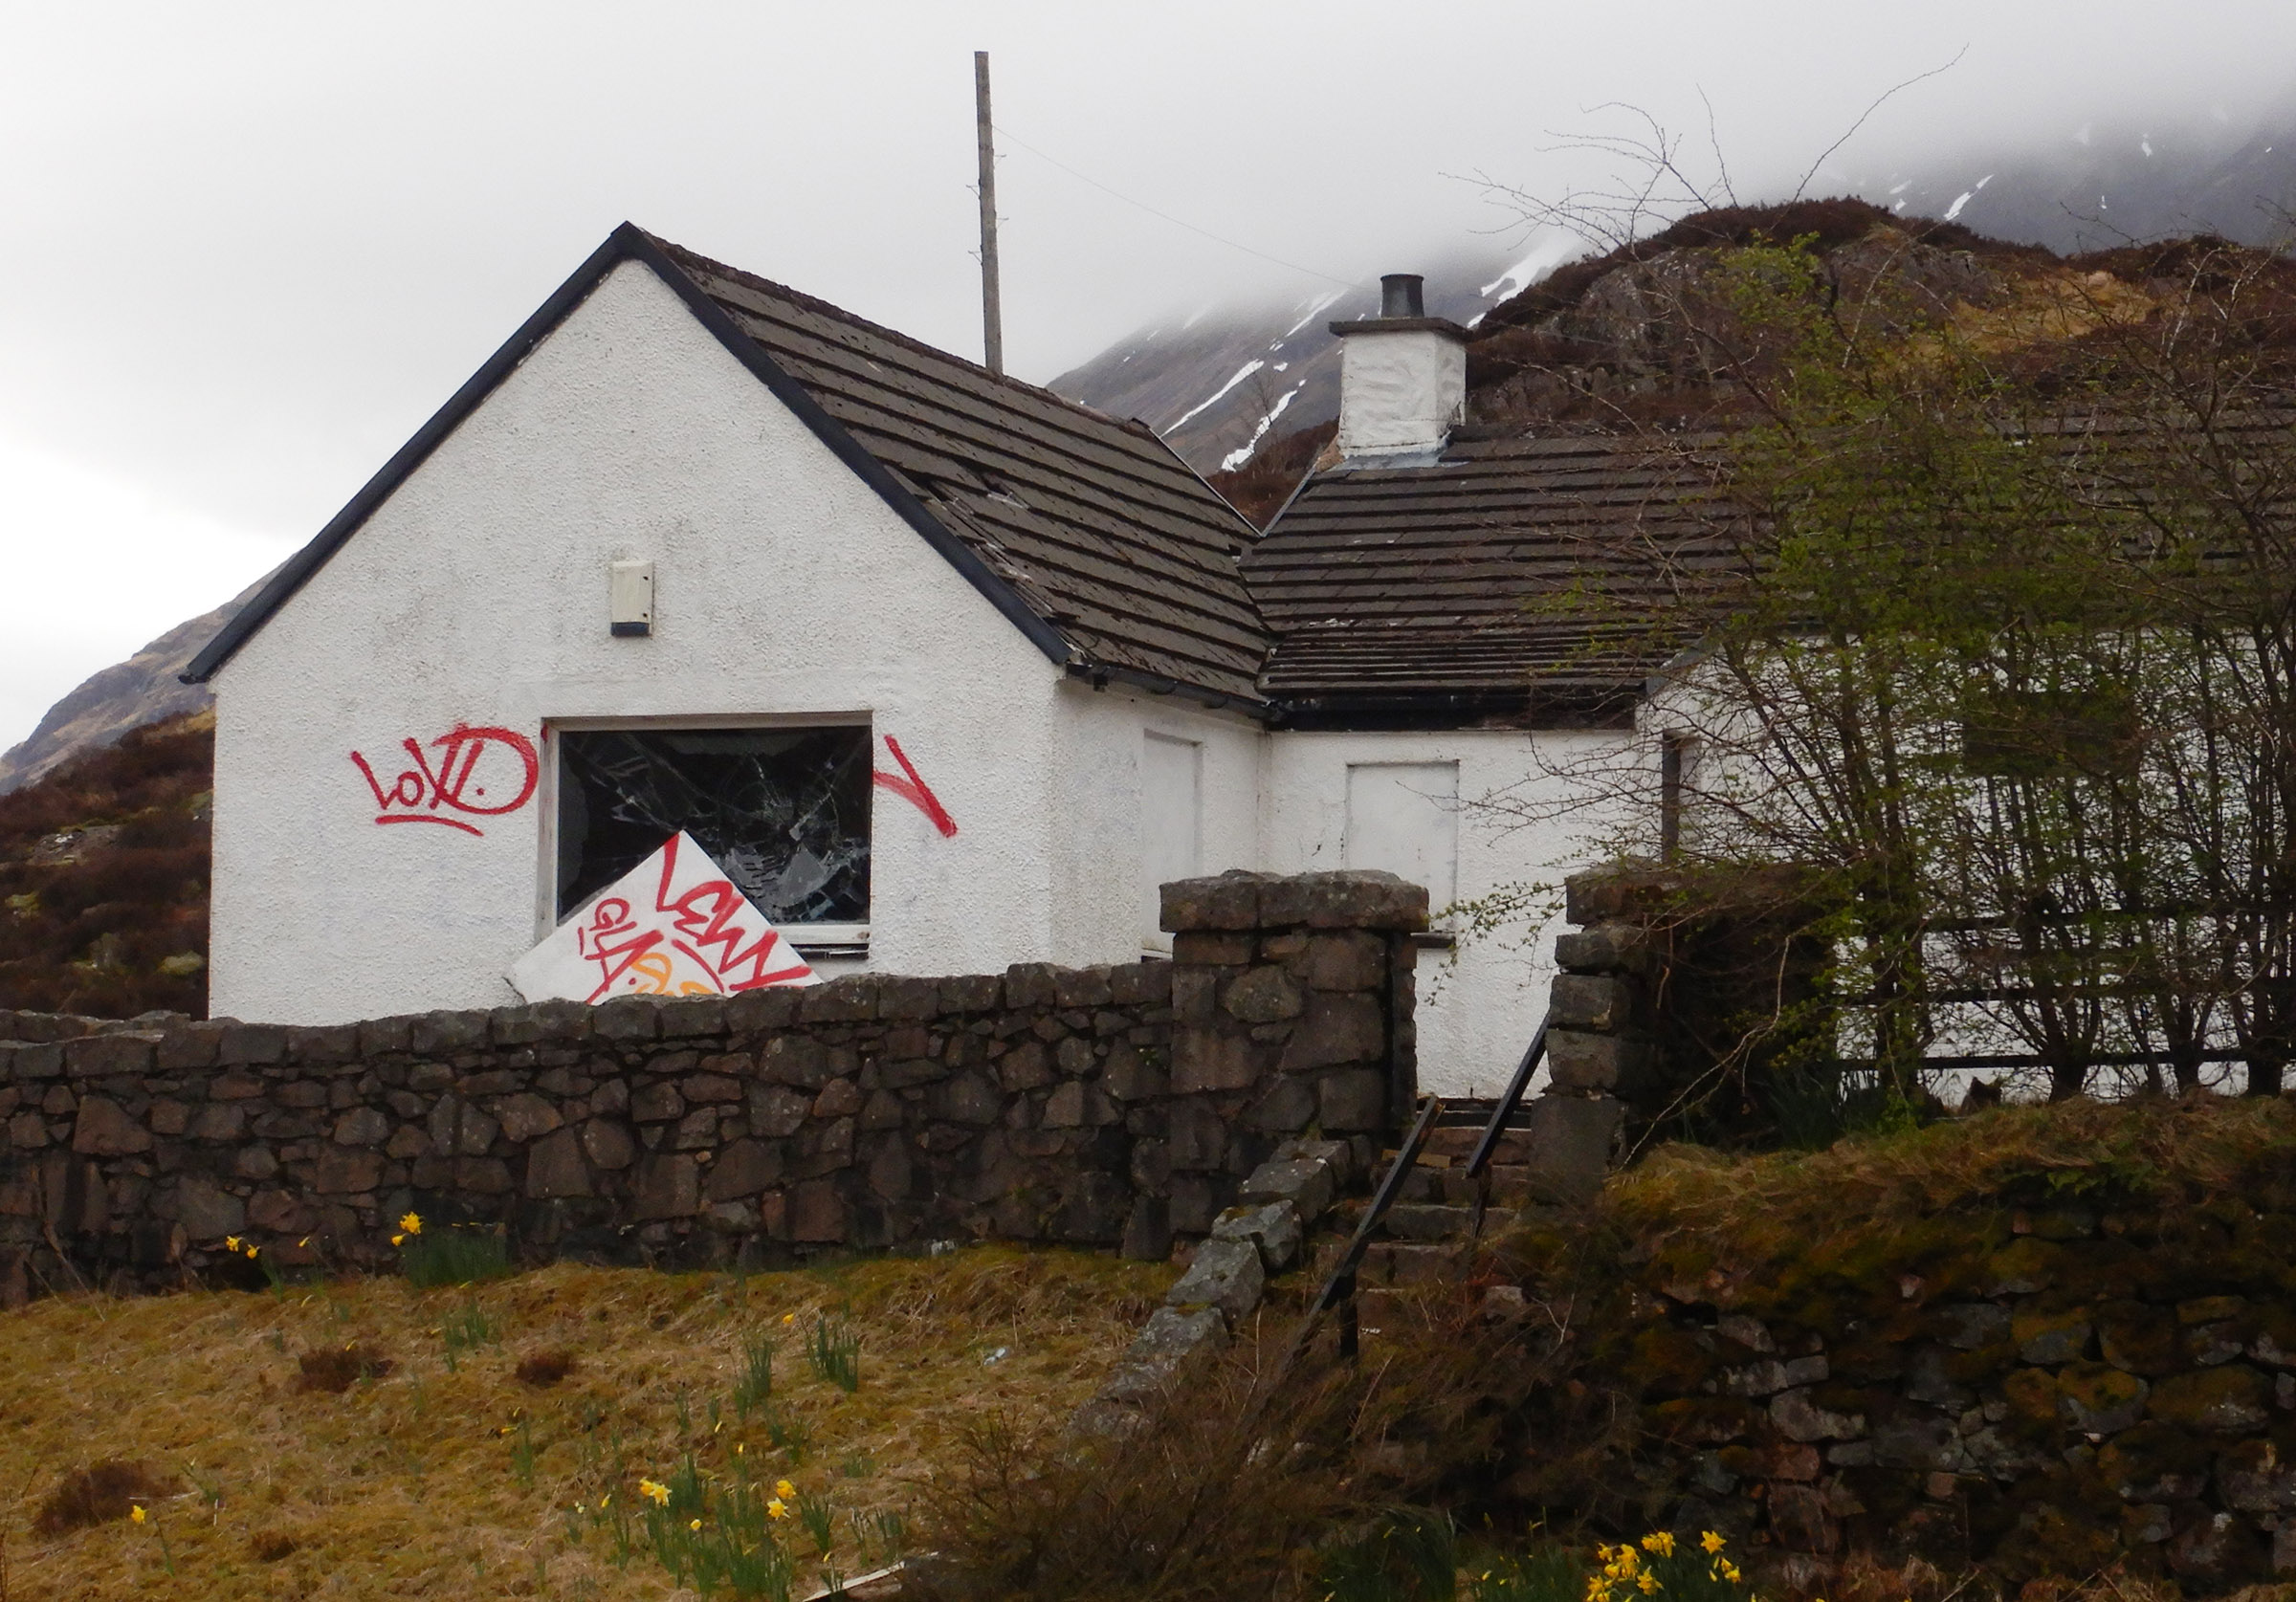 FORMER SAVILE HOUSE VANDALISED   A smashed window and spray painted board on the former Glencoe residence of Jimmy Savile. Photograph: Iain Ferguson, The Write Image